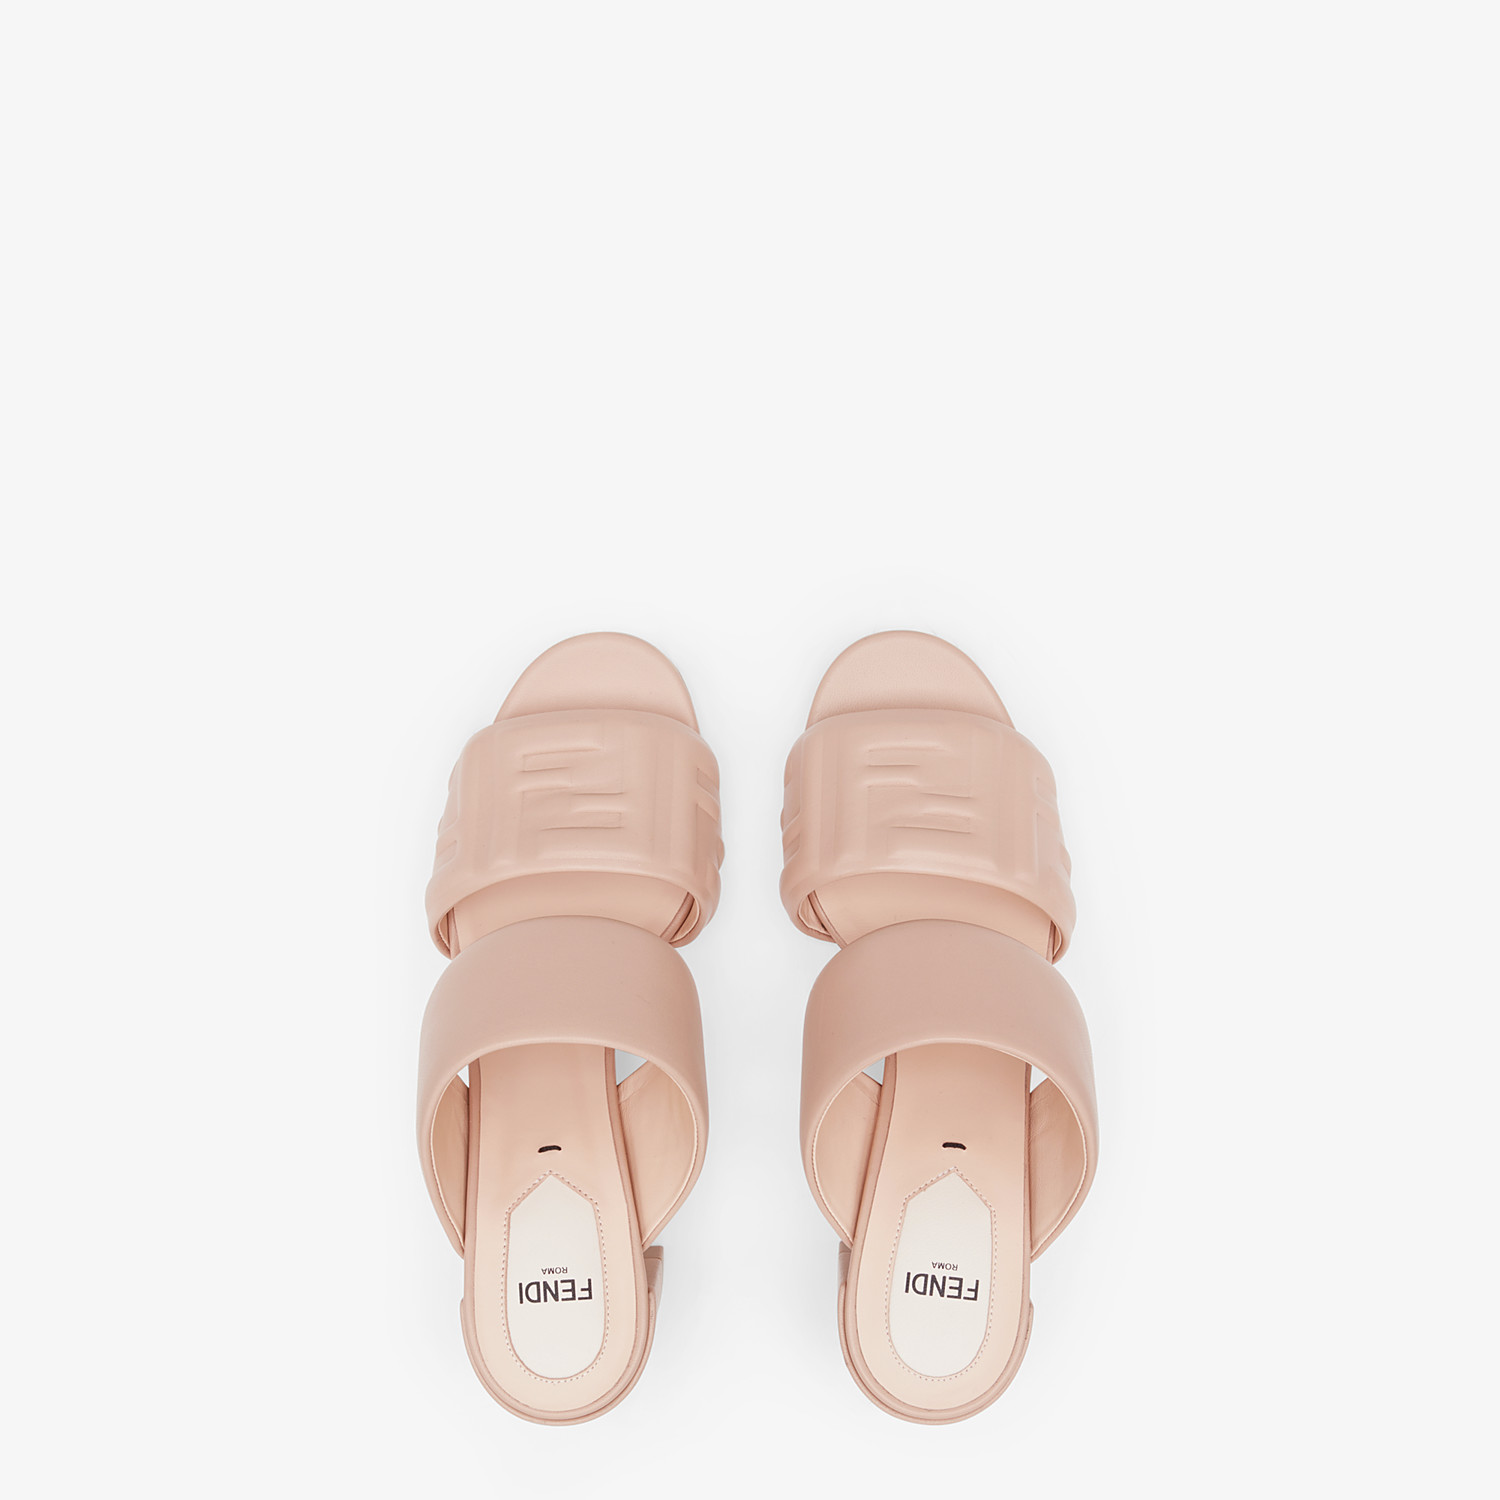 FENDI SLIDES - Pink leather slides - view 4 detail